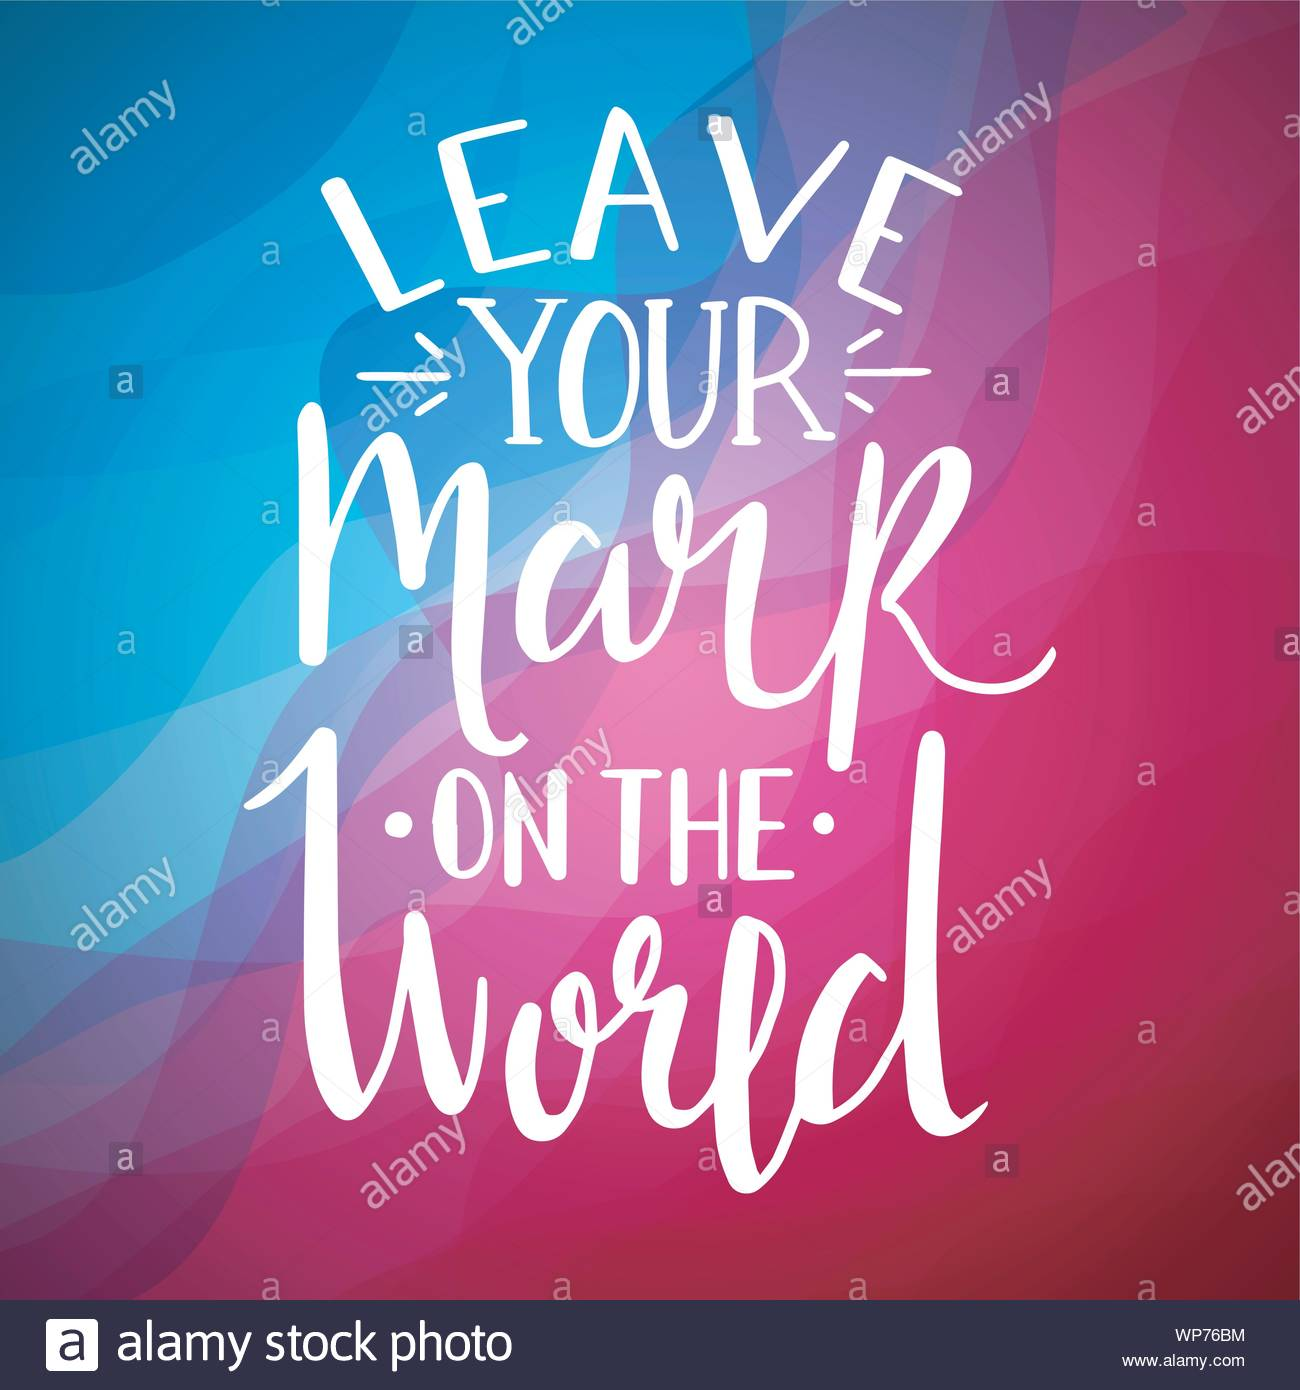 Leave Your Mark On The World Inspirational Quotes And ...